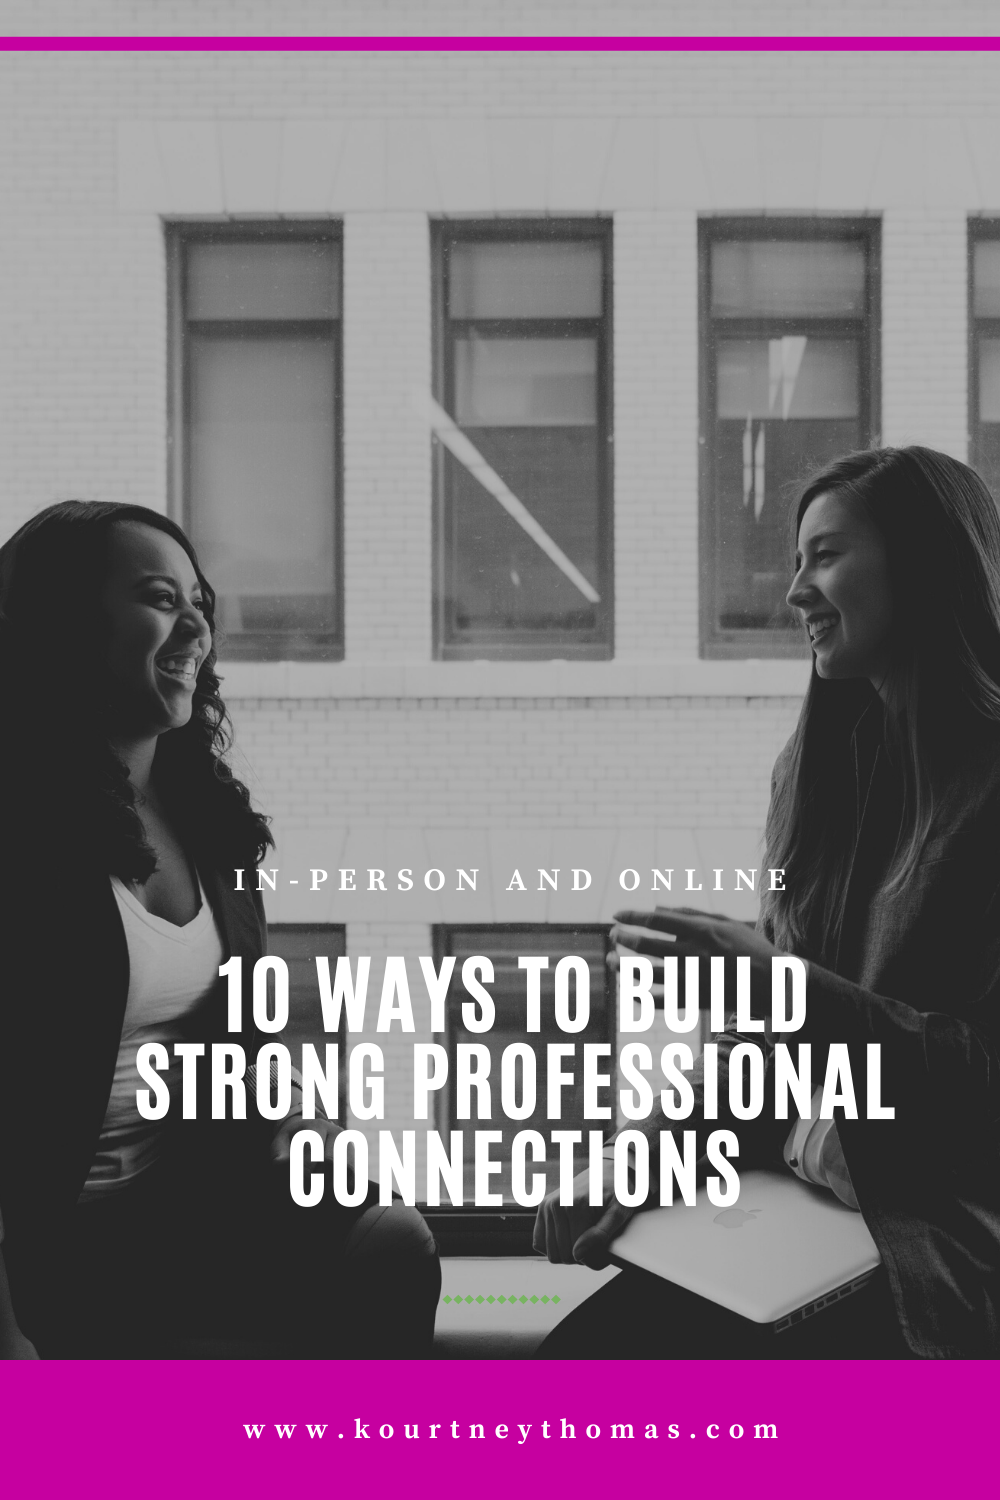 10 ways to build strong professional connections   kourtney thomas fitness life coach